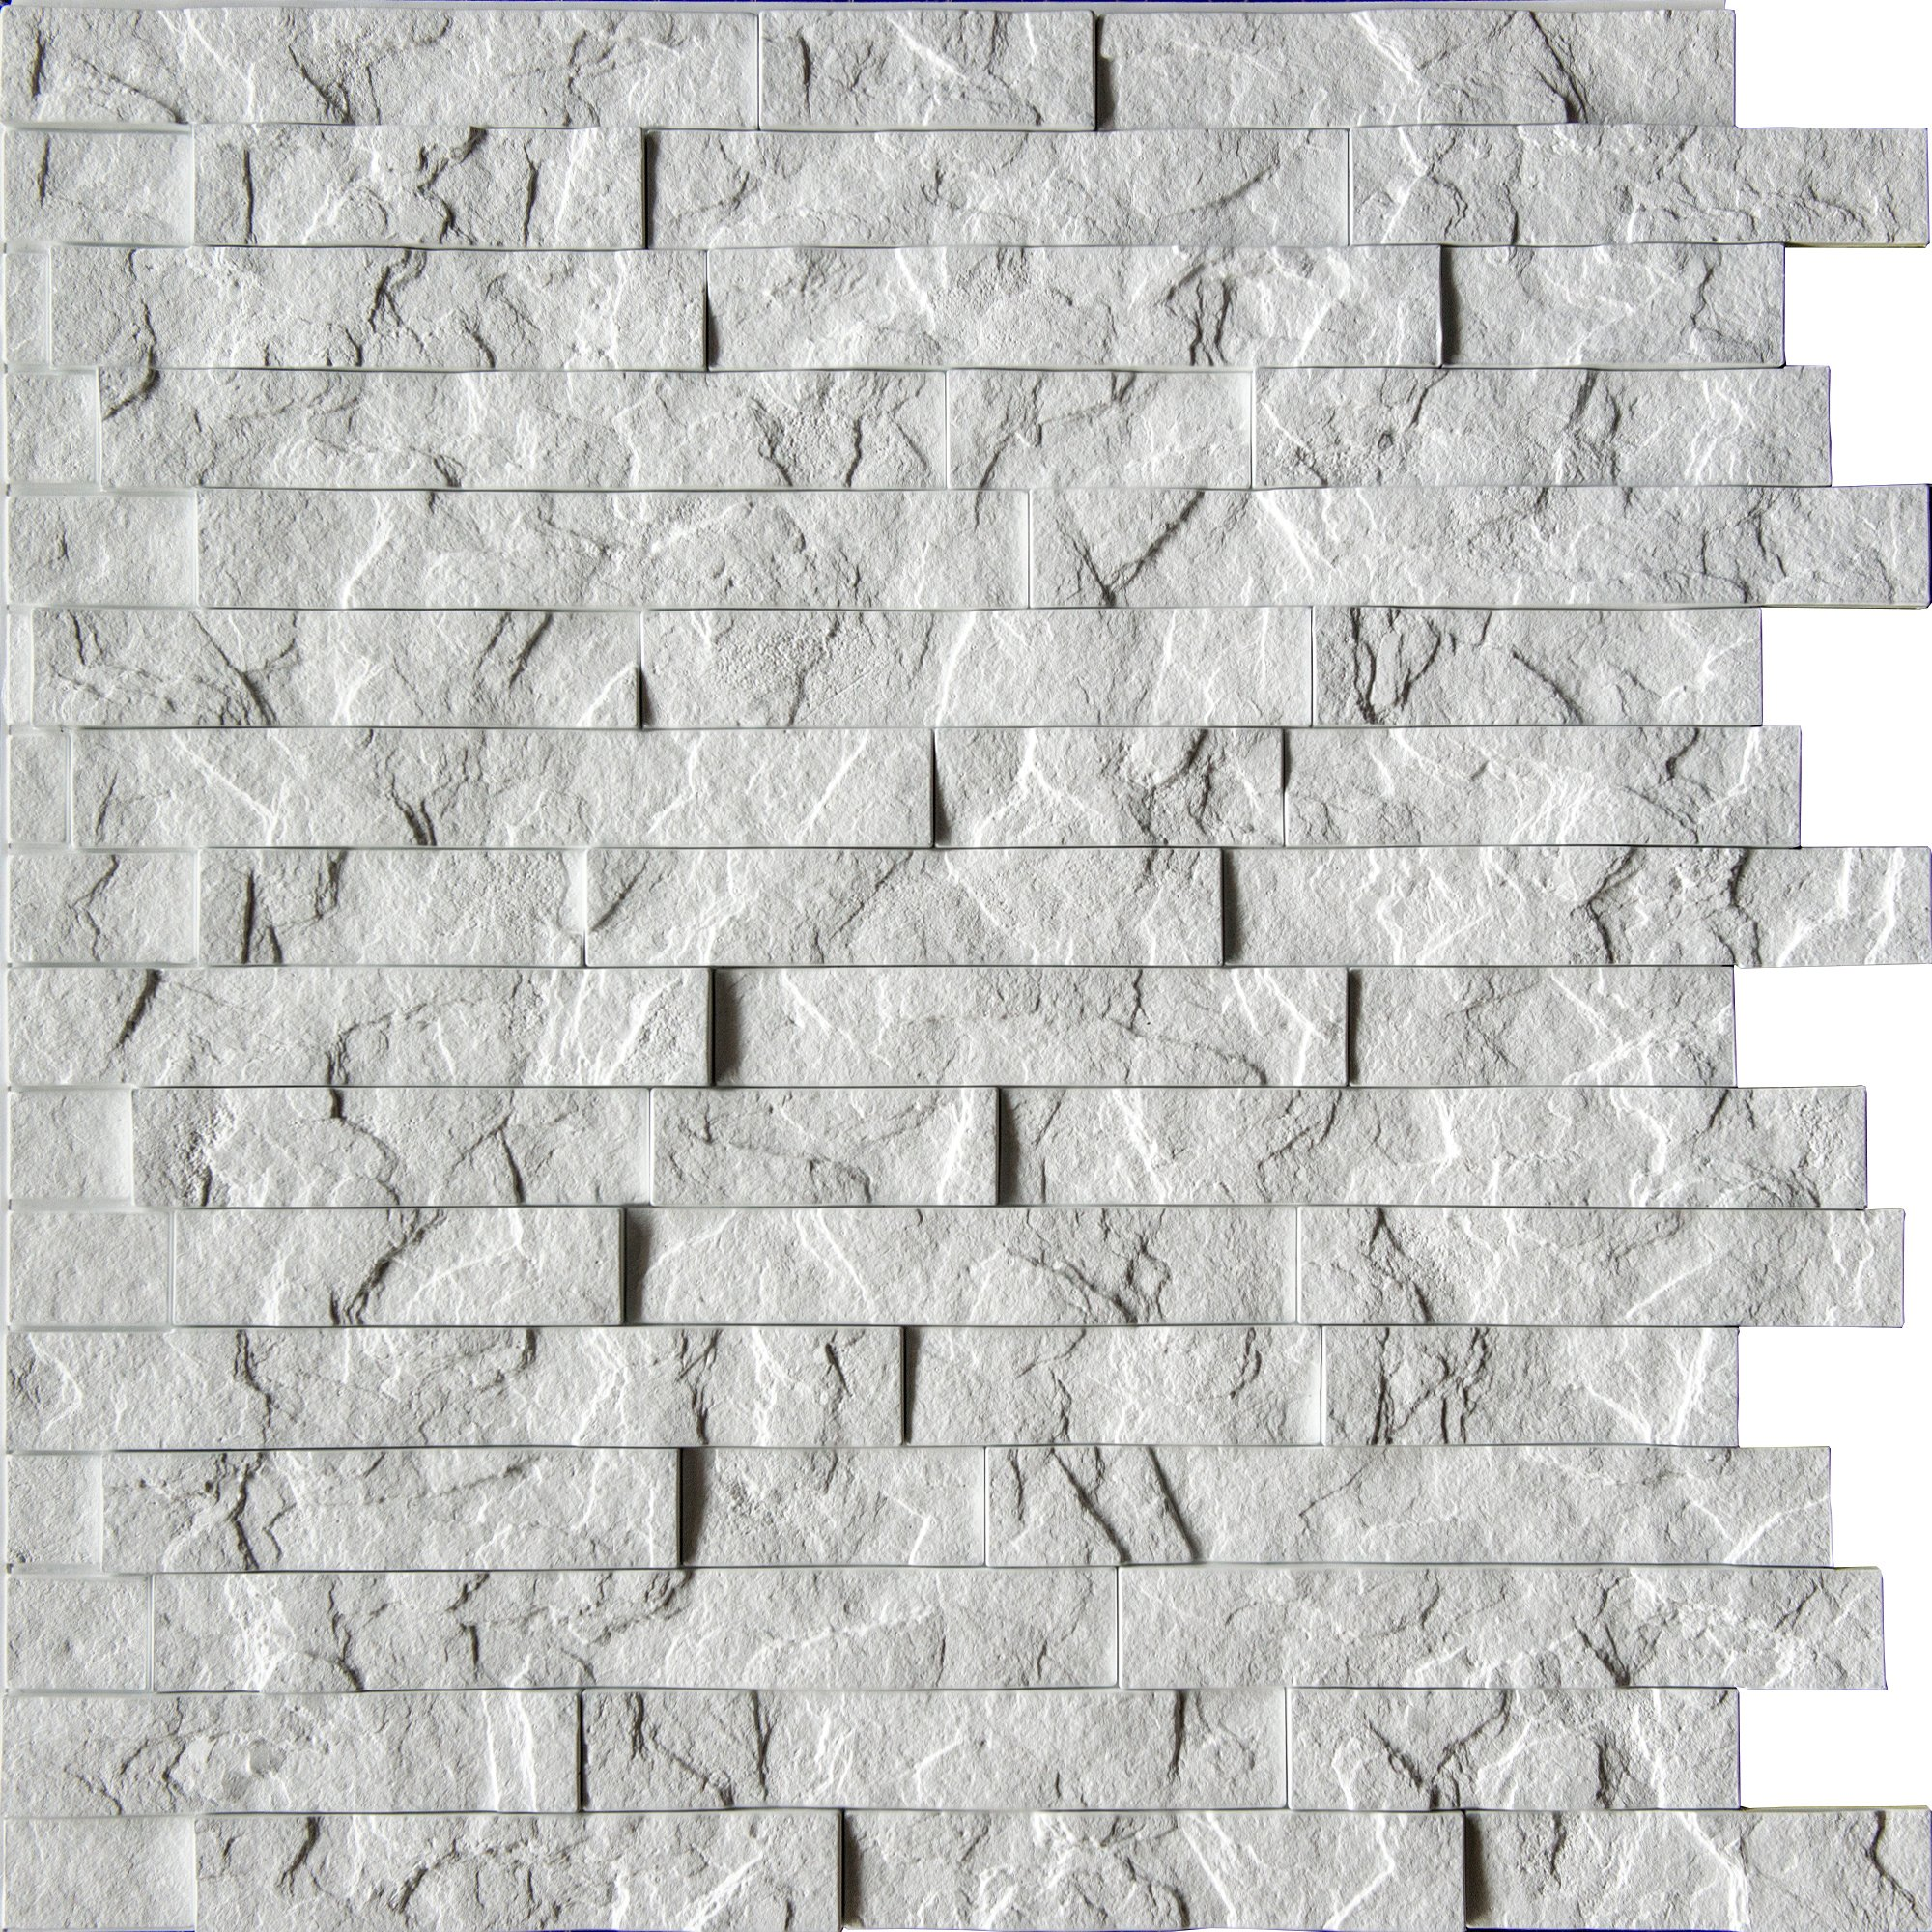 "Ledge Stone 3D Wall Panels - Lightweight thermoplastic Decorative 3D Wall Tiles for Easy Glue Up Installation. Crystal White Color. Pack of 4 Tiles (Each Tile 24""x24"" Covers ~4 sq. ft)"